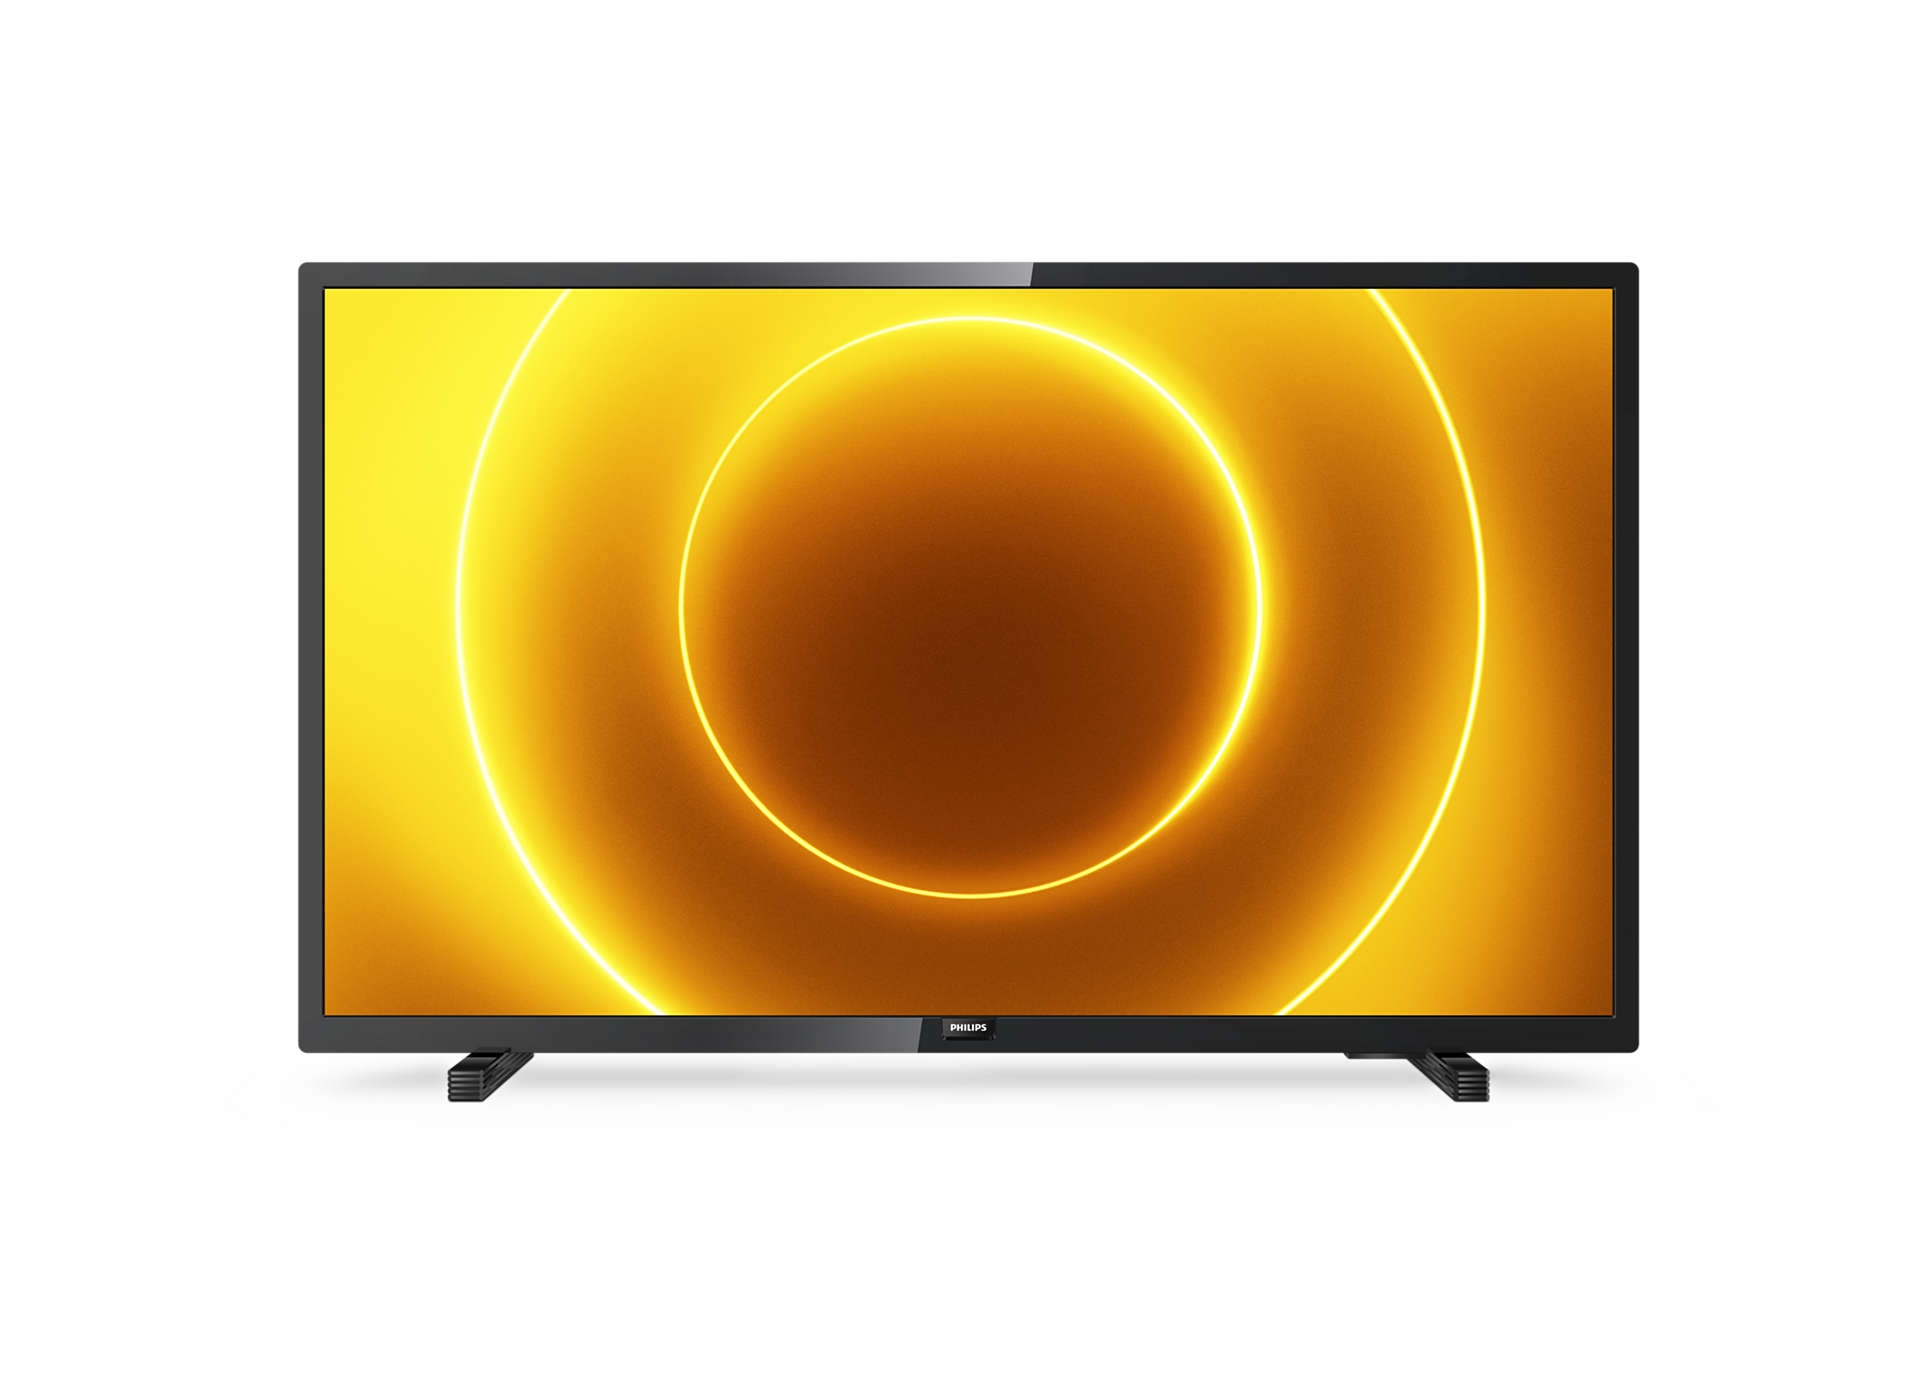 ЖК Телевизор Ultra HD Philips 43PFS5505 43